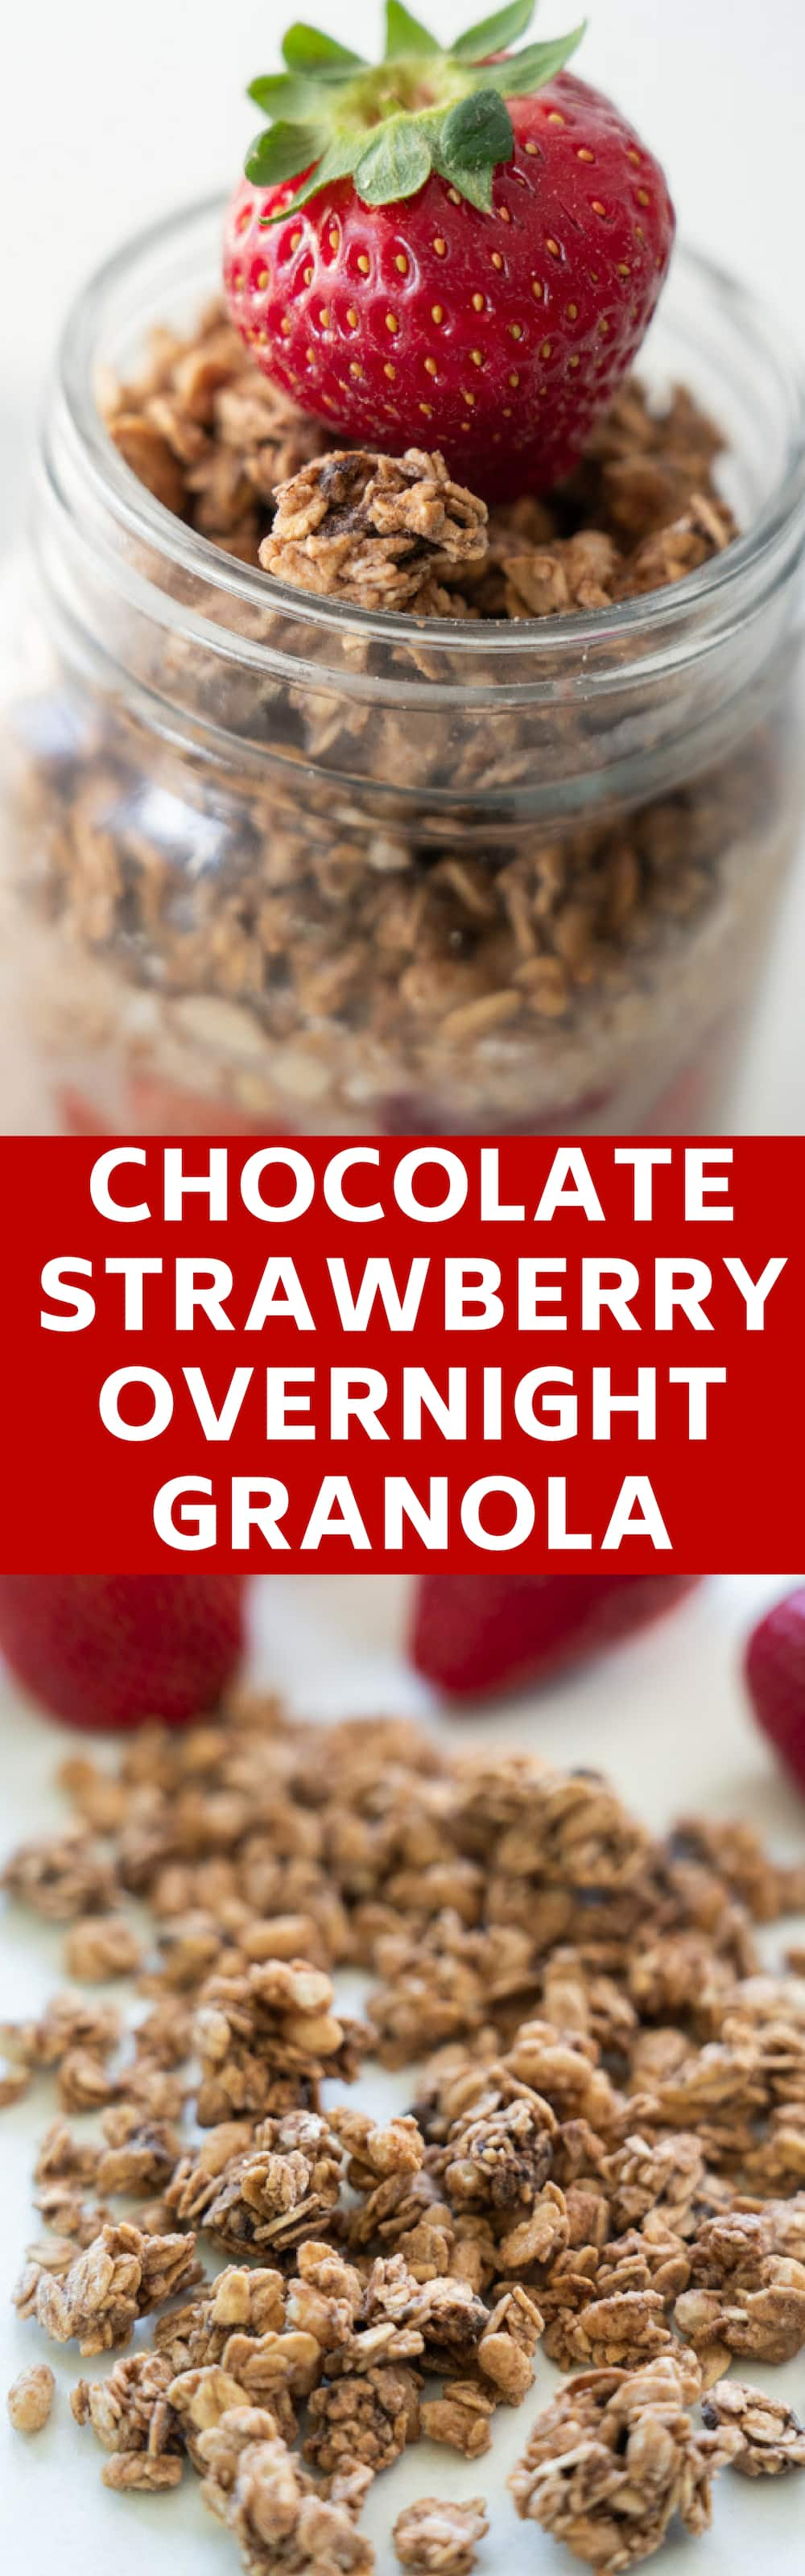 Chocolate Strawberry Overnight Granola is a healthy easy breakfast idea for toddlers that the entire family will love.   This recipe is made by Mom, tasted and approved by my toddler!  Similar to overnight oats, but made with granola instead!